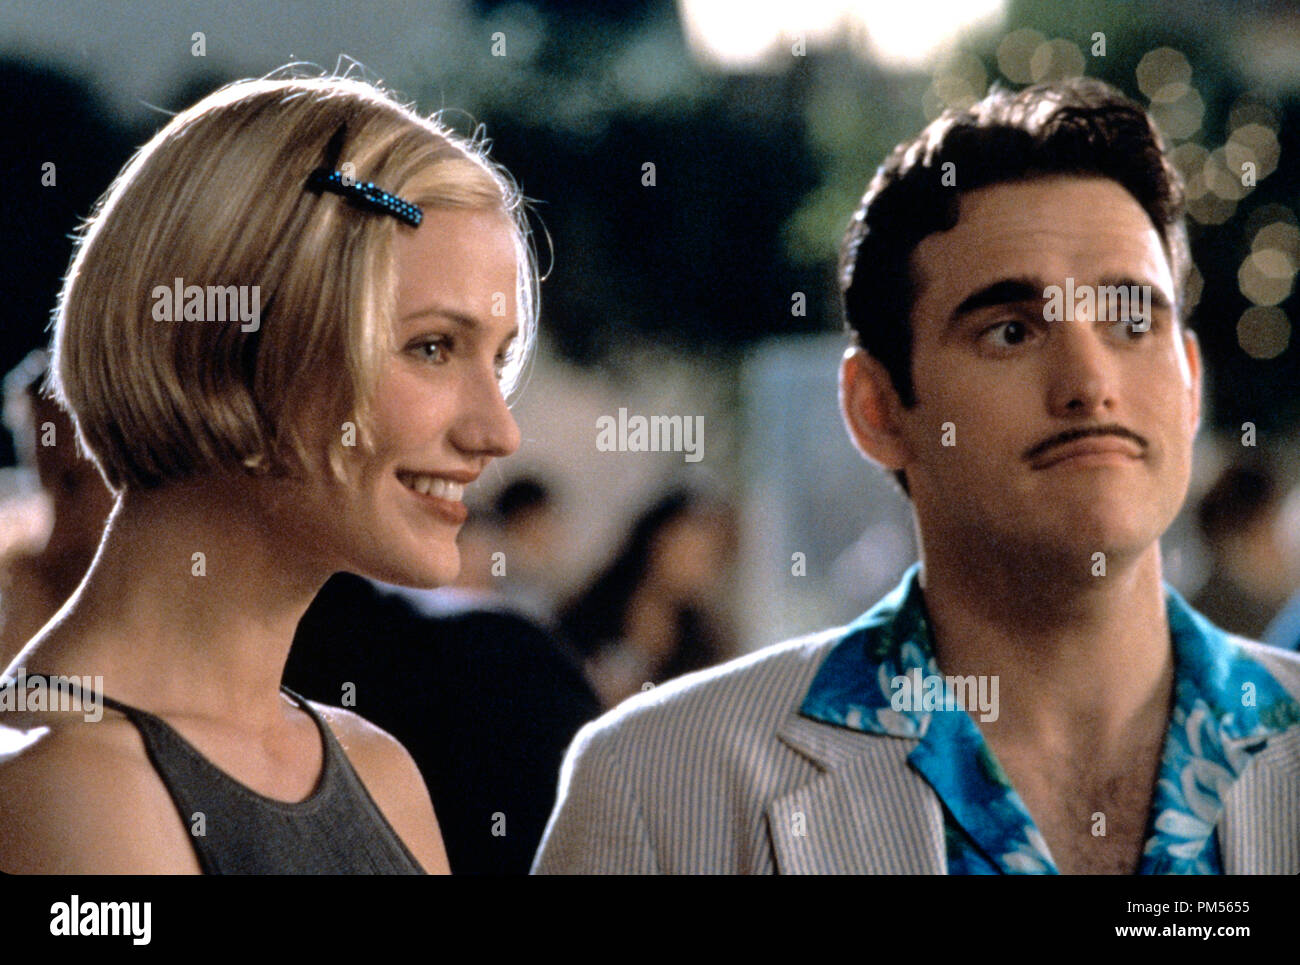 'There's Something About Mary' 1998 Cameron Diaz, Matt Dillon - Stock Image